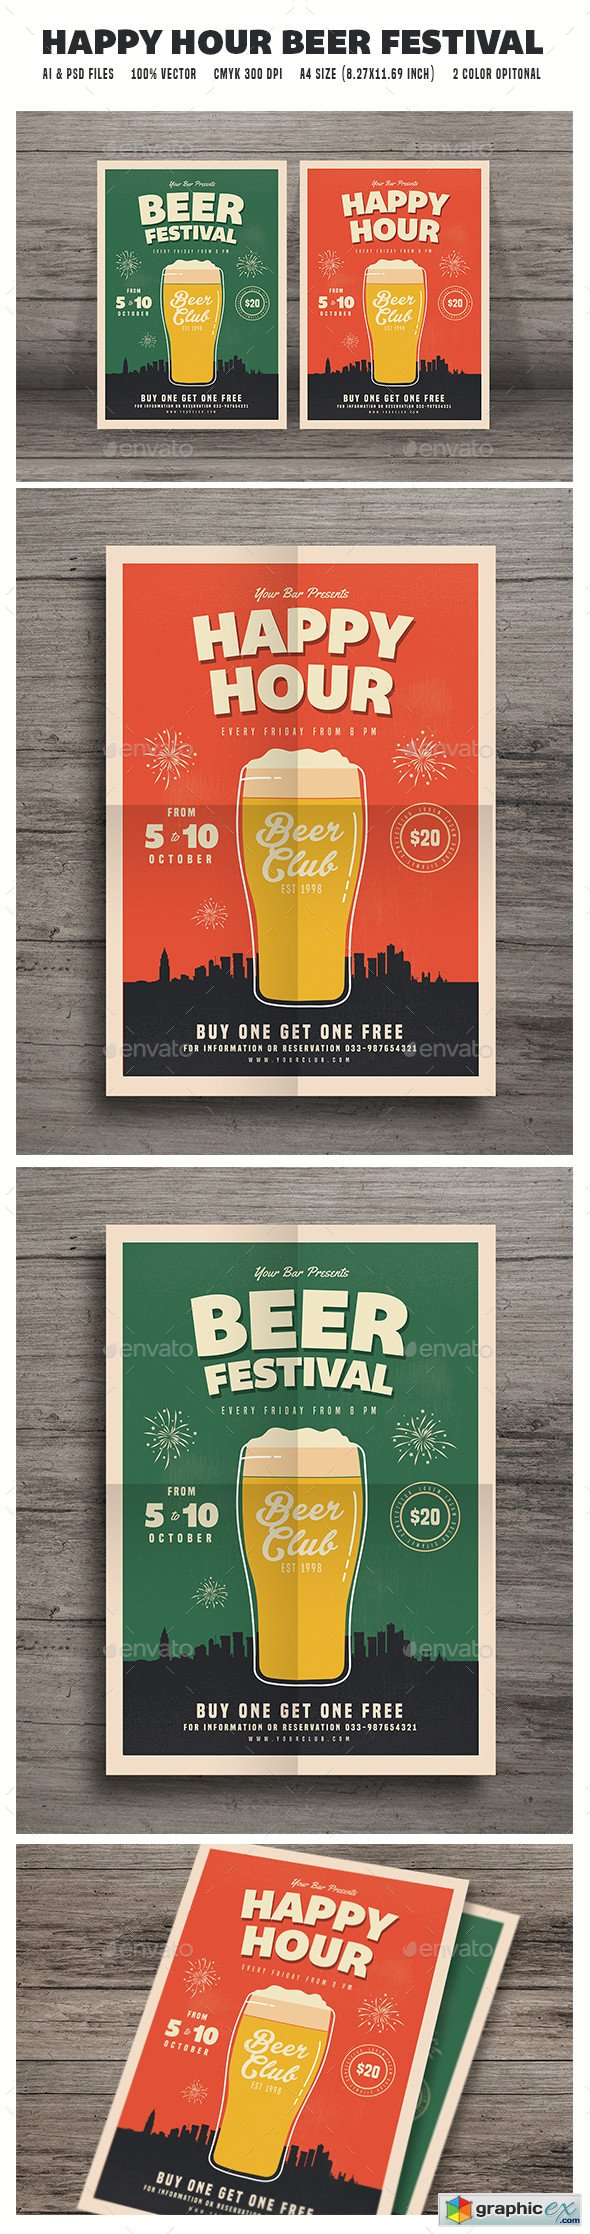 Happy Hour Beer Festival Flyer